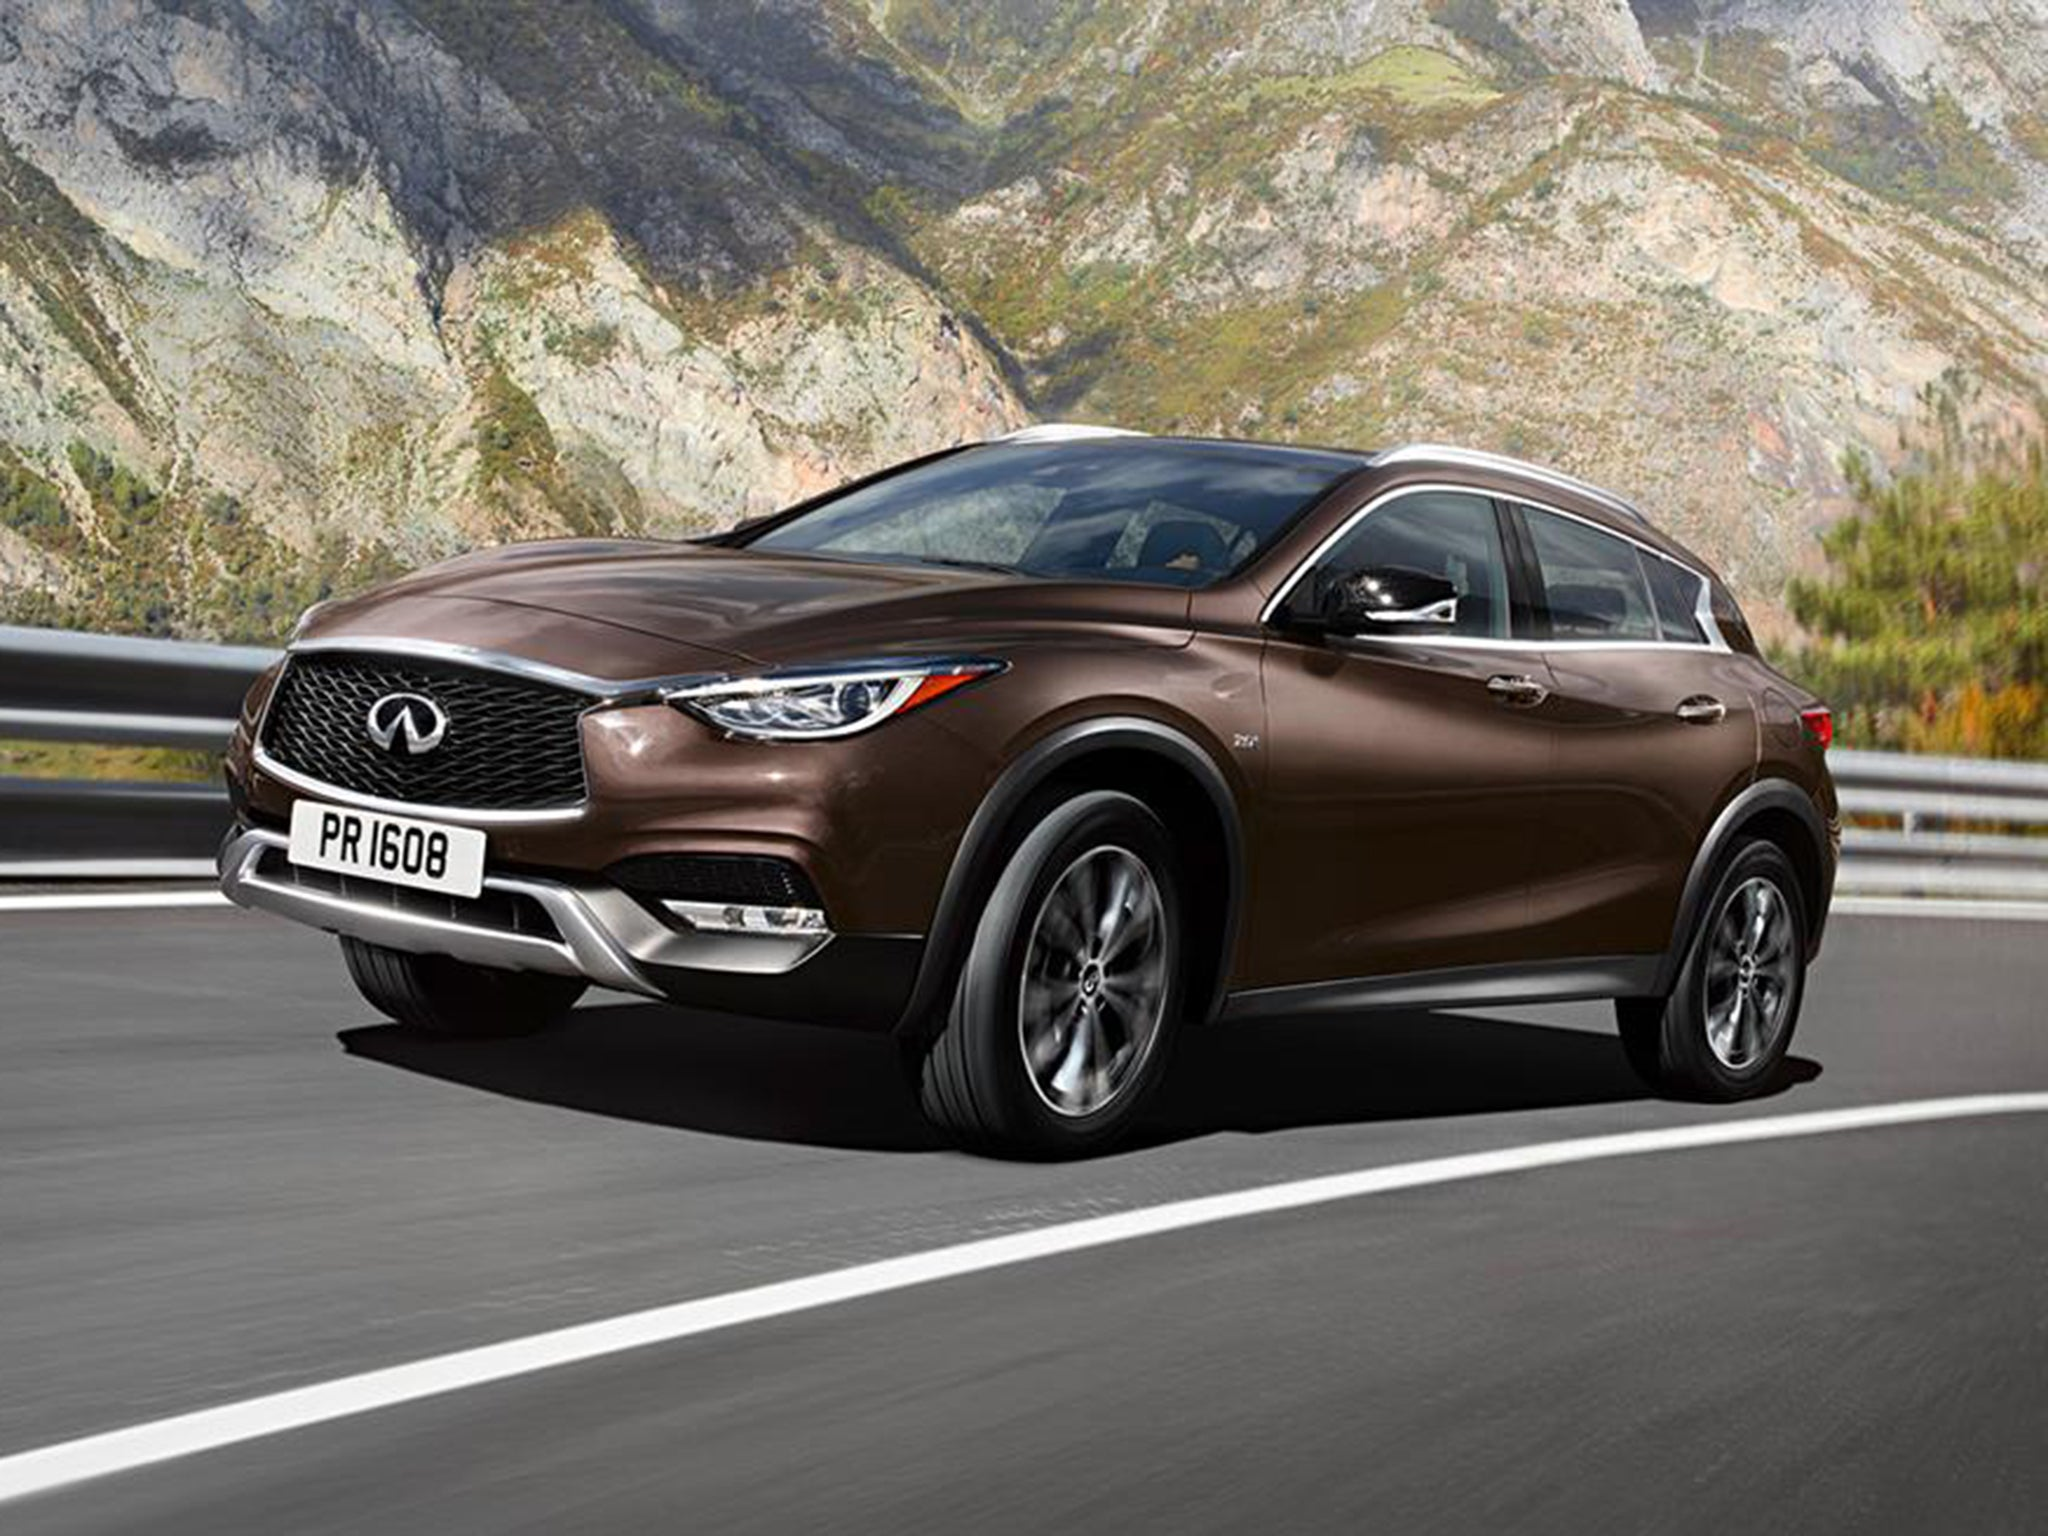 2016 infiniti qx30 revealed rival for bmw x3 arriving next summer the independent